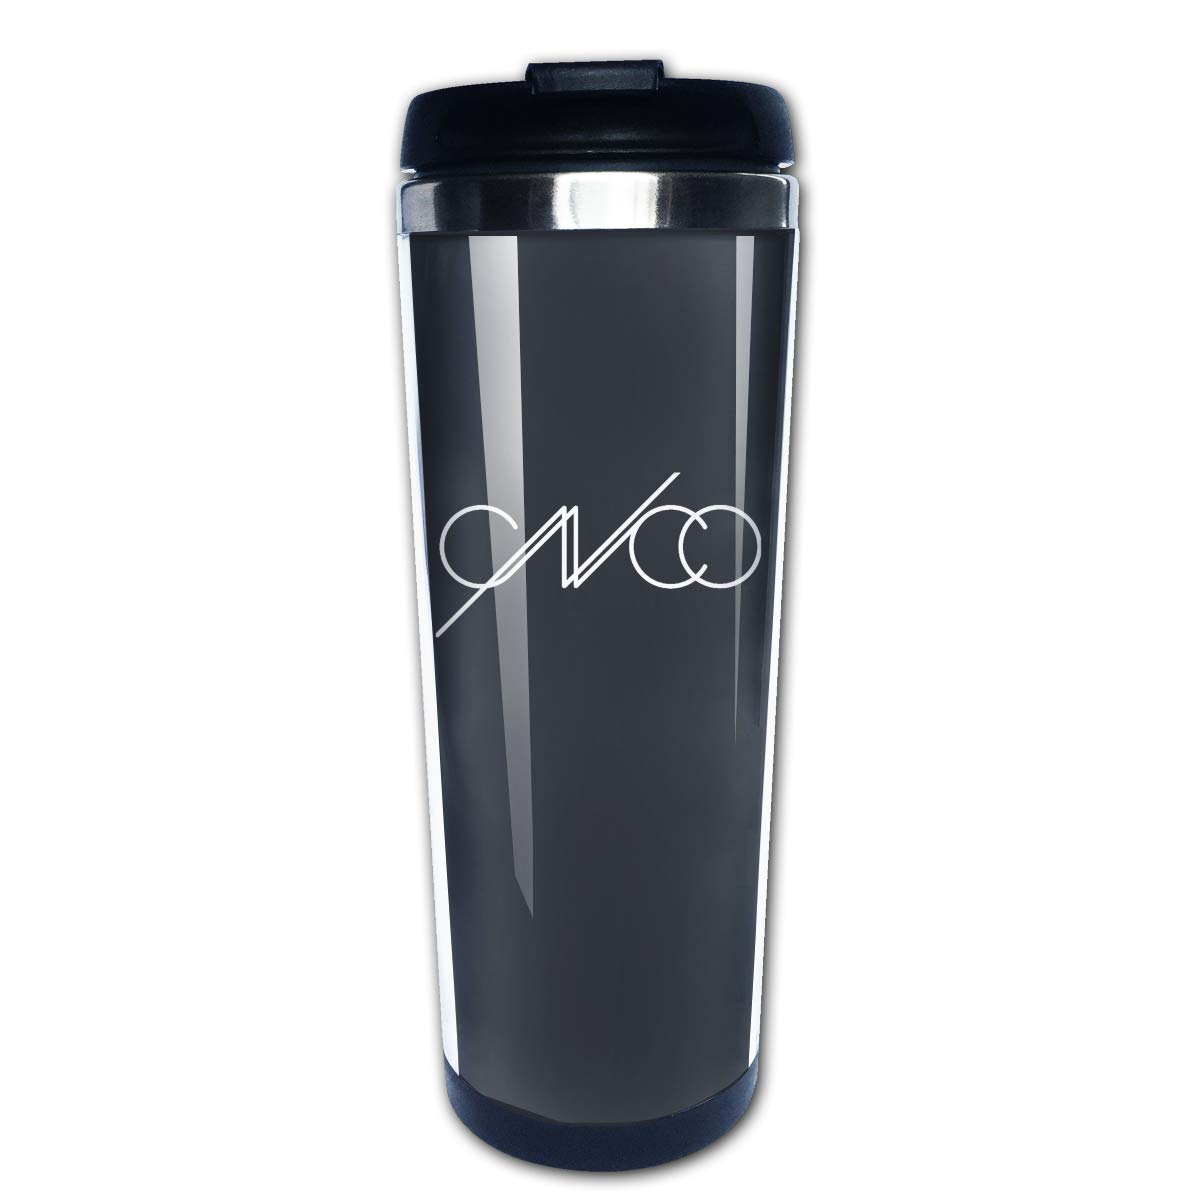 Amazon.com: EARTGO Simple Vacuum Insulated Stainless Steel ...